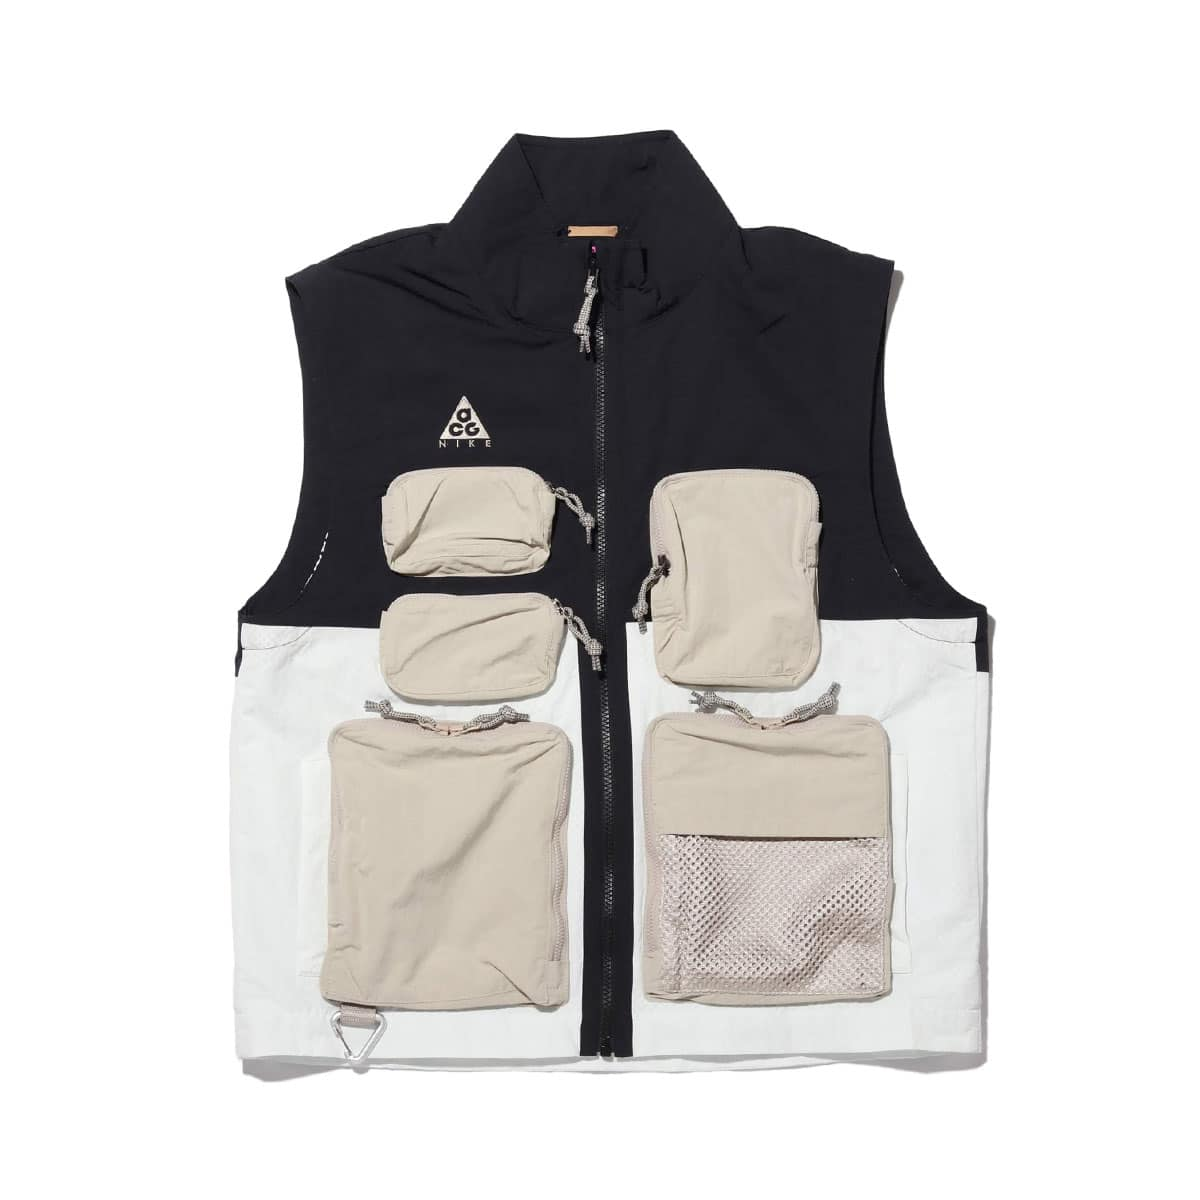 NIKE AS M NRG ACG VEST BLACK/SUMMIT WHITE/STRING/ANTIQUE SILVER 20SU-S_photo_large